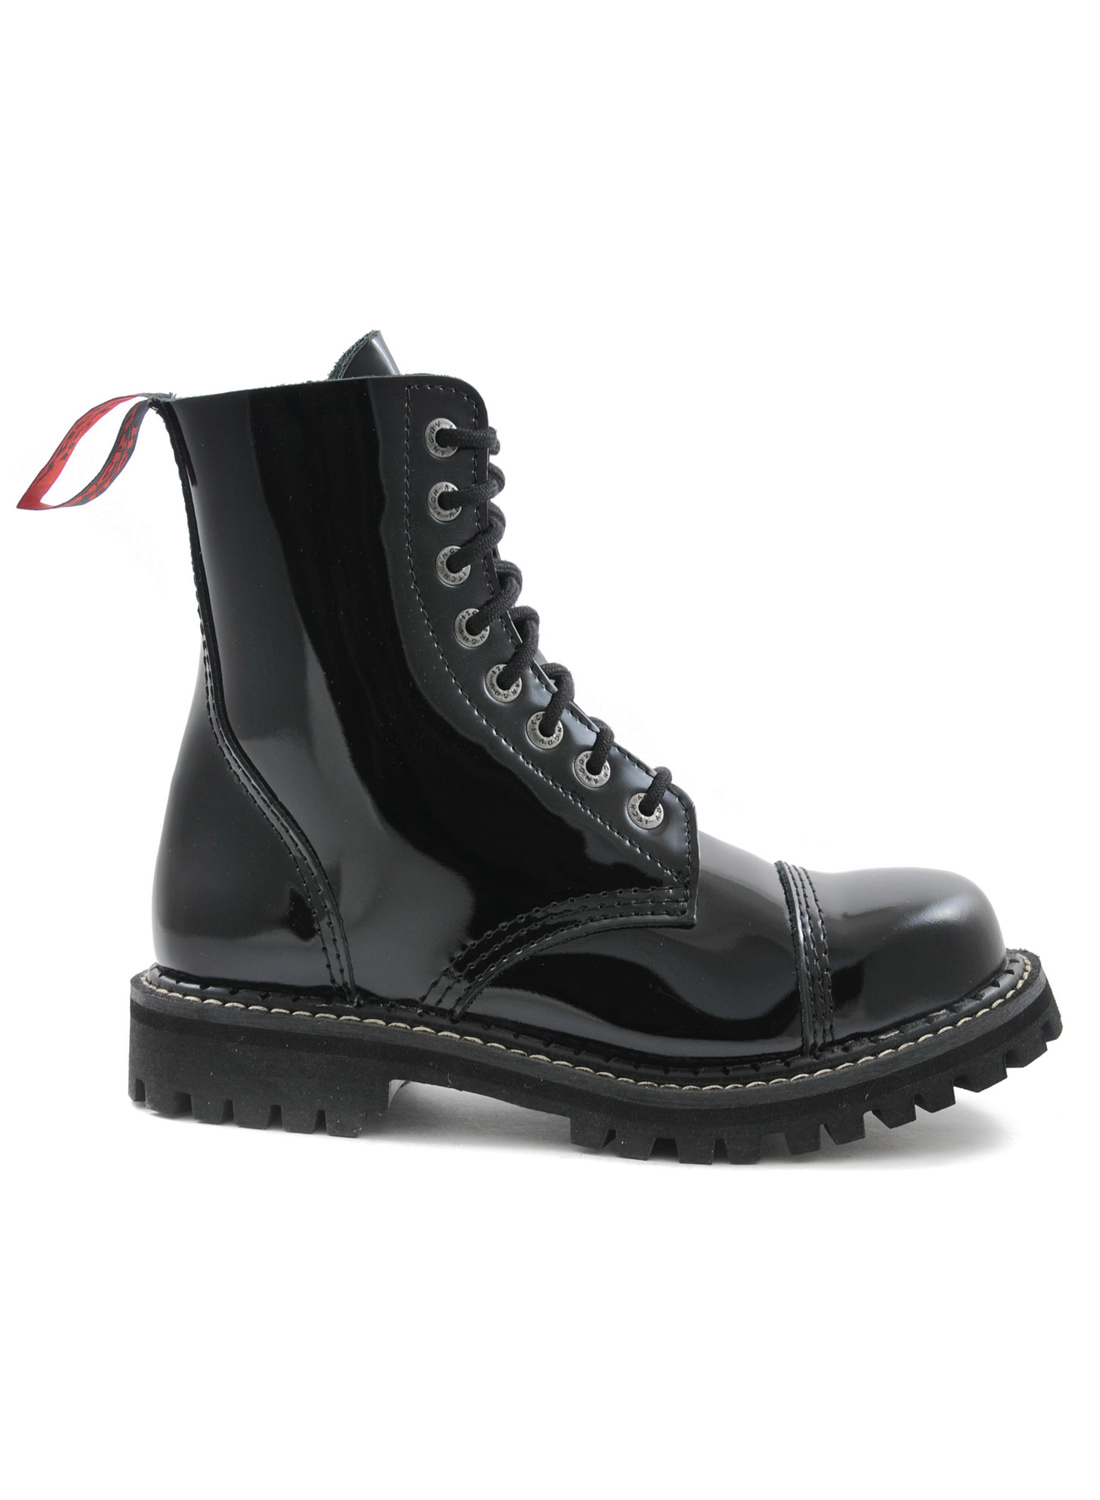 Angry Itch 8 Eye Steel Toe Boots Leather Patent